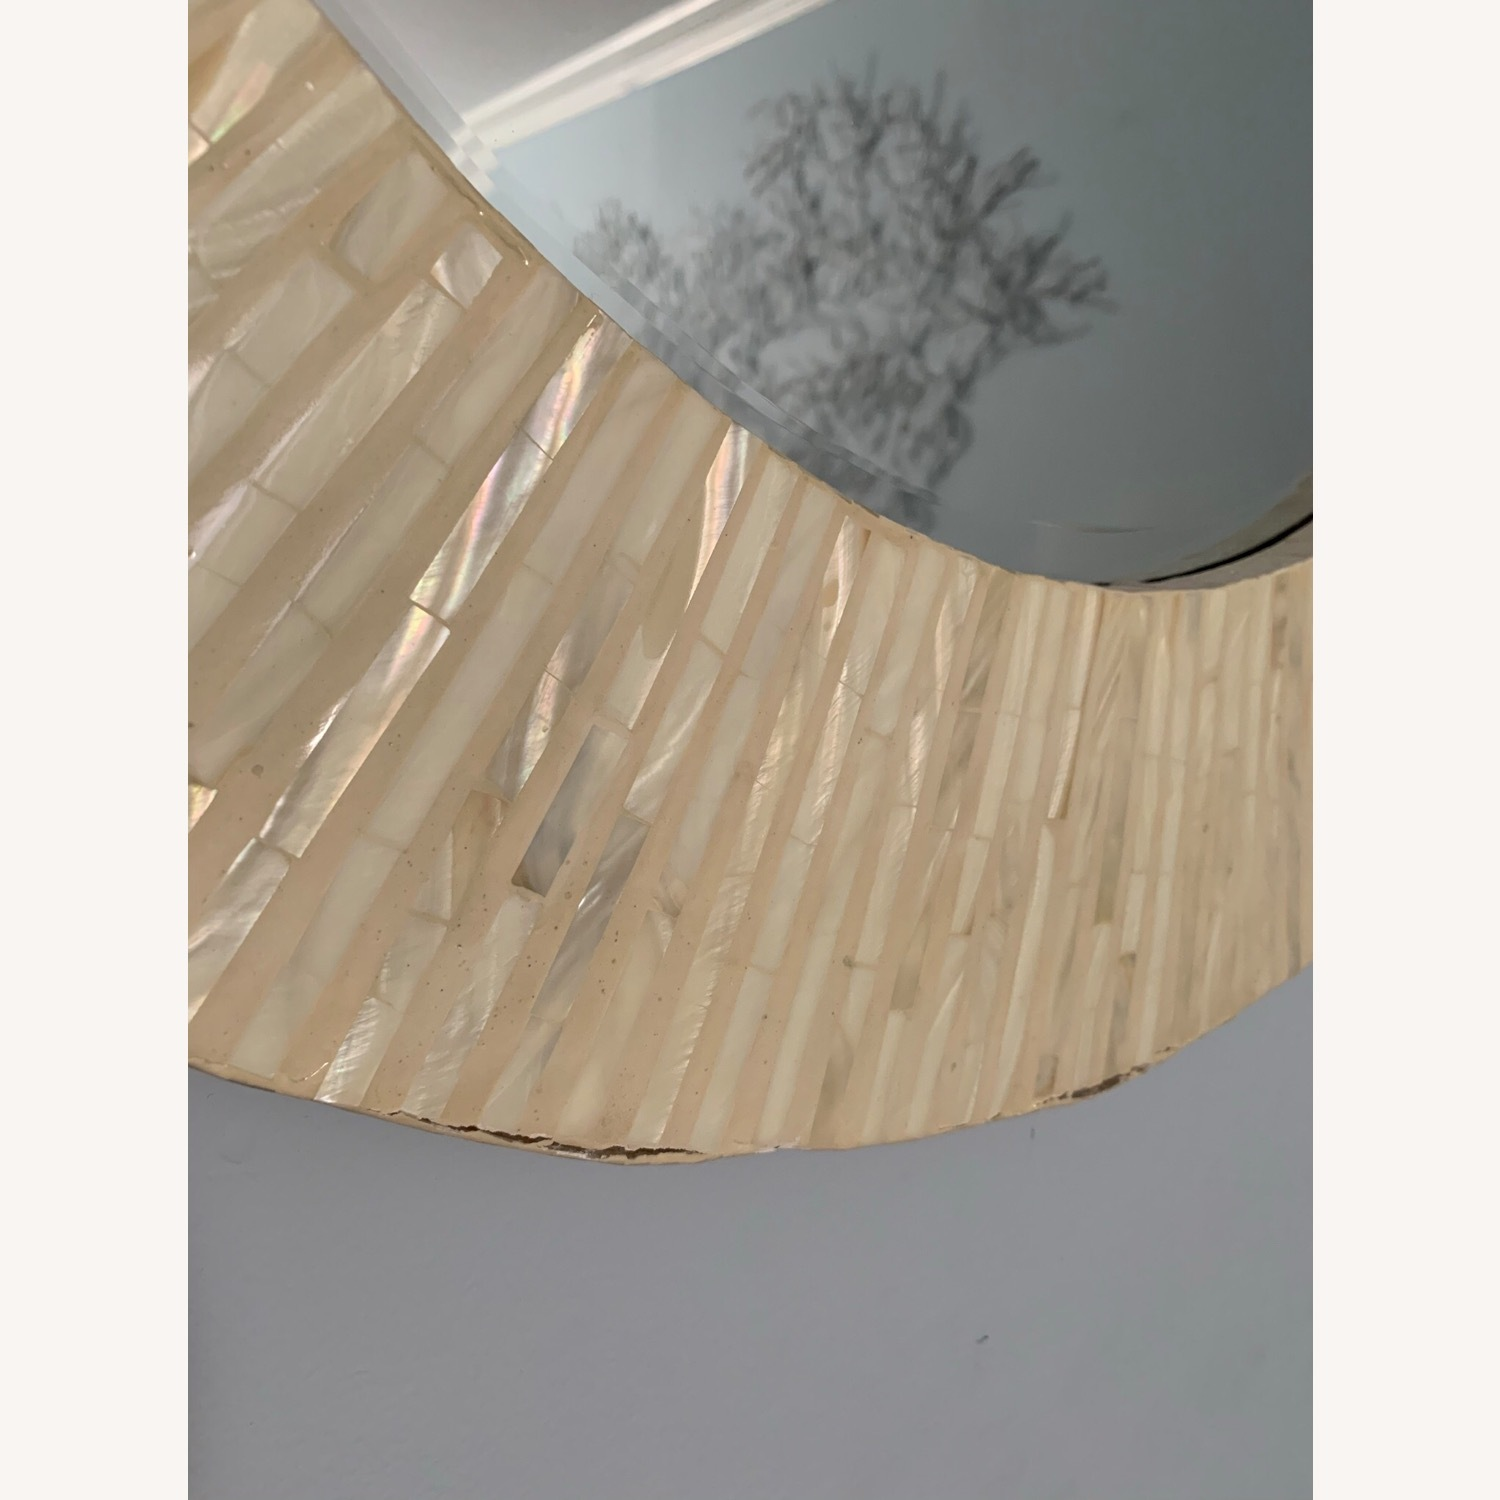 Pier 1 Mother of Pearl Round Mirror - image-4